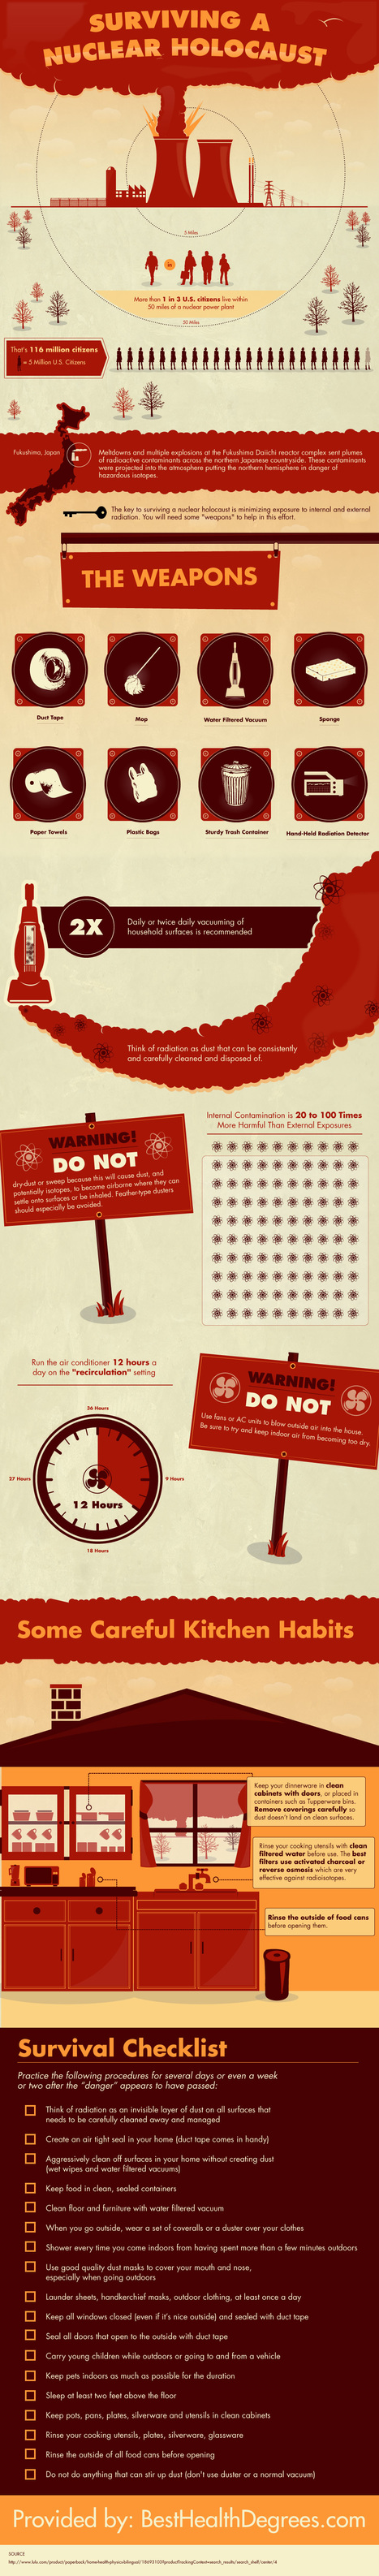 InfoGraphic: How to survive a nuclear holocaust   Social media and education   Scoop.it